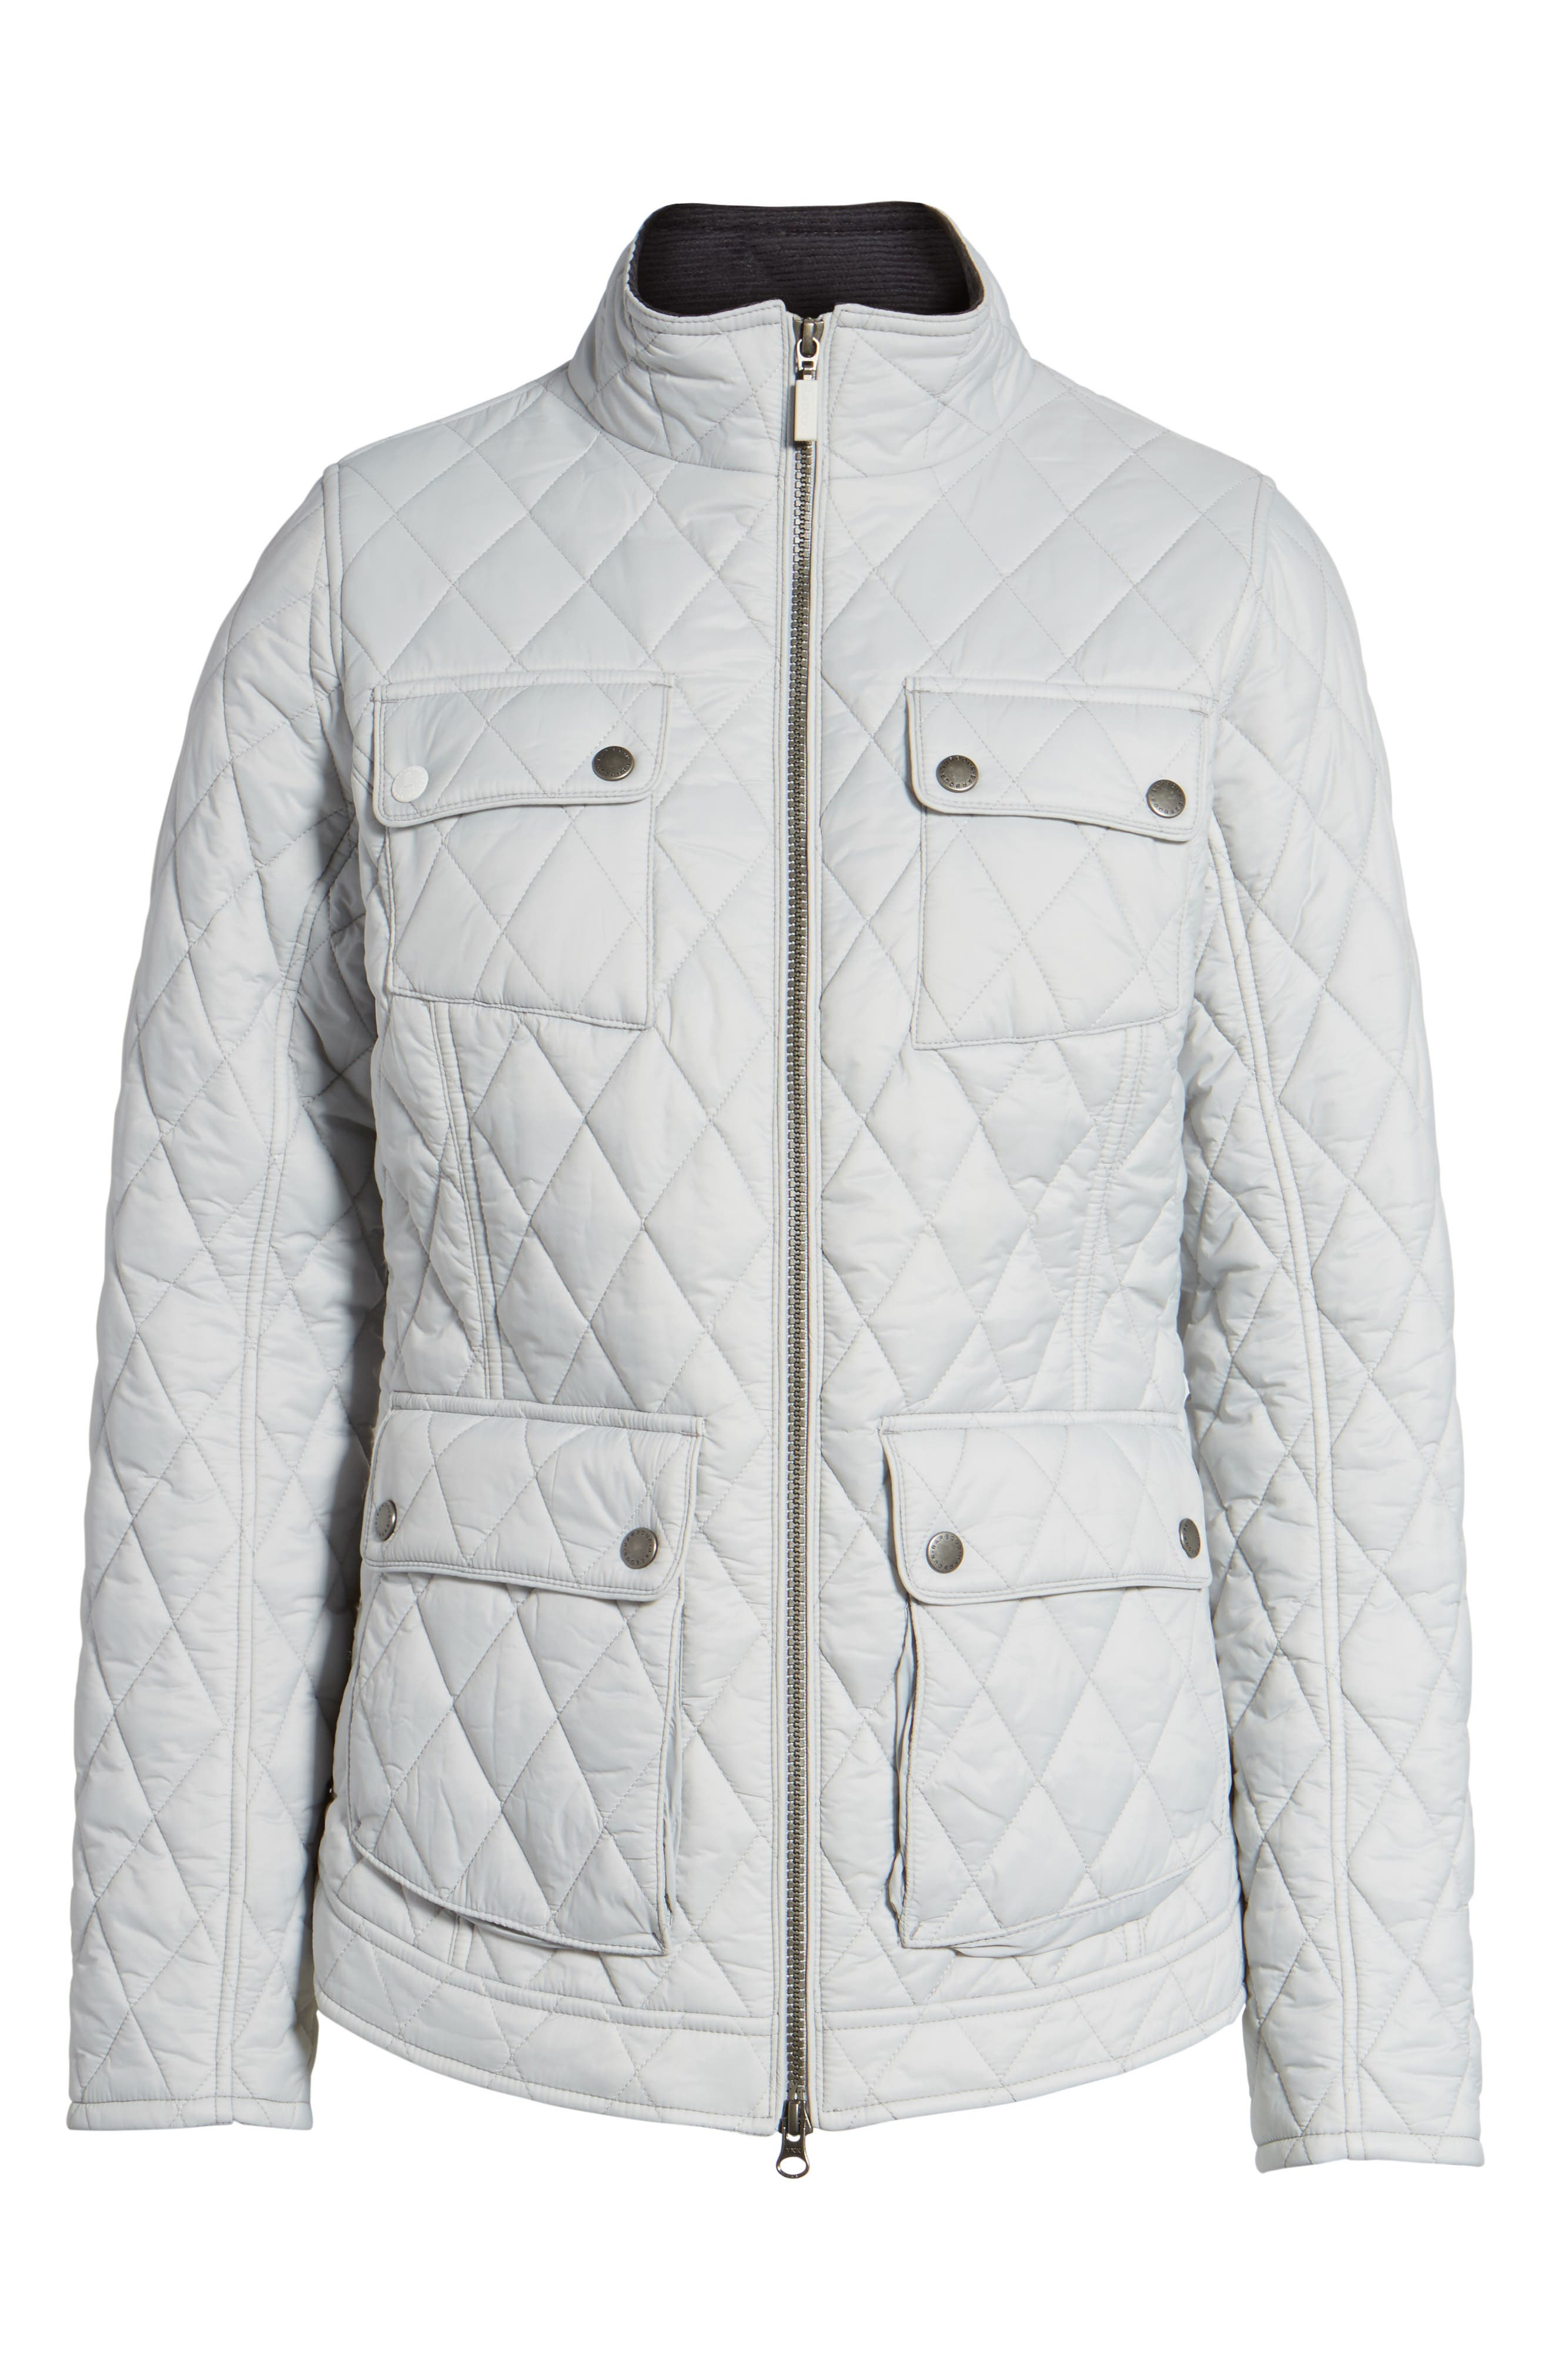 Dolostone Quilted Jacket,                             Alternate thumbnail 5, color,                             150